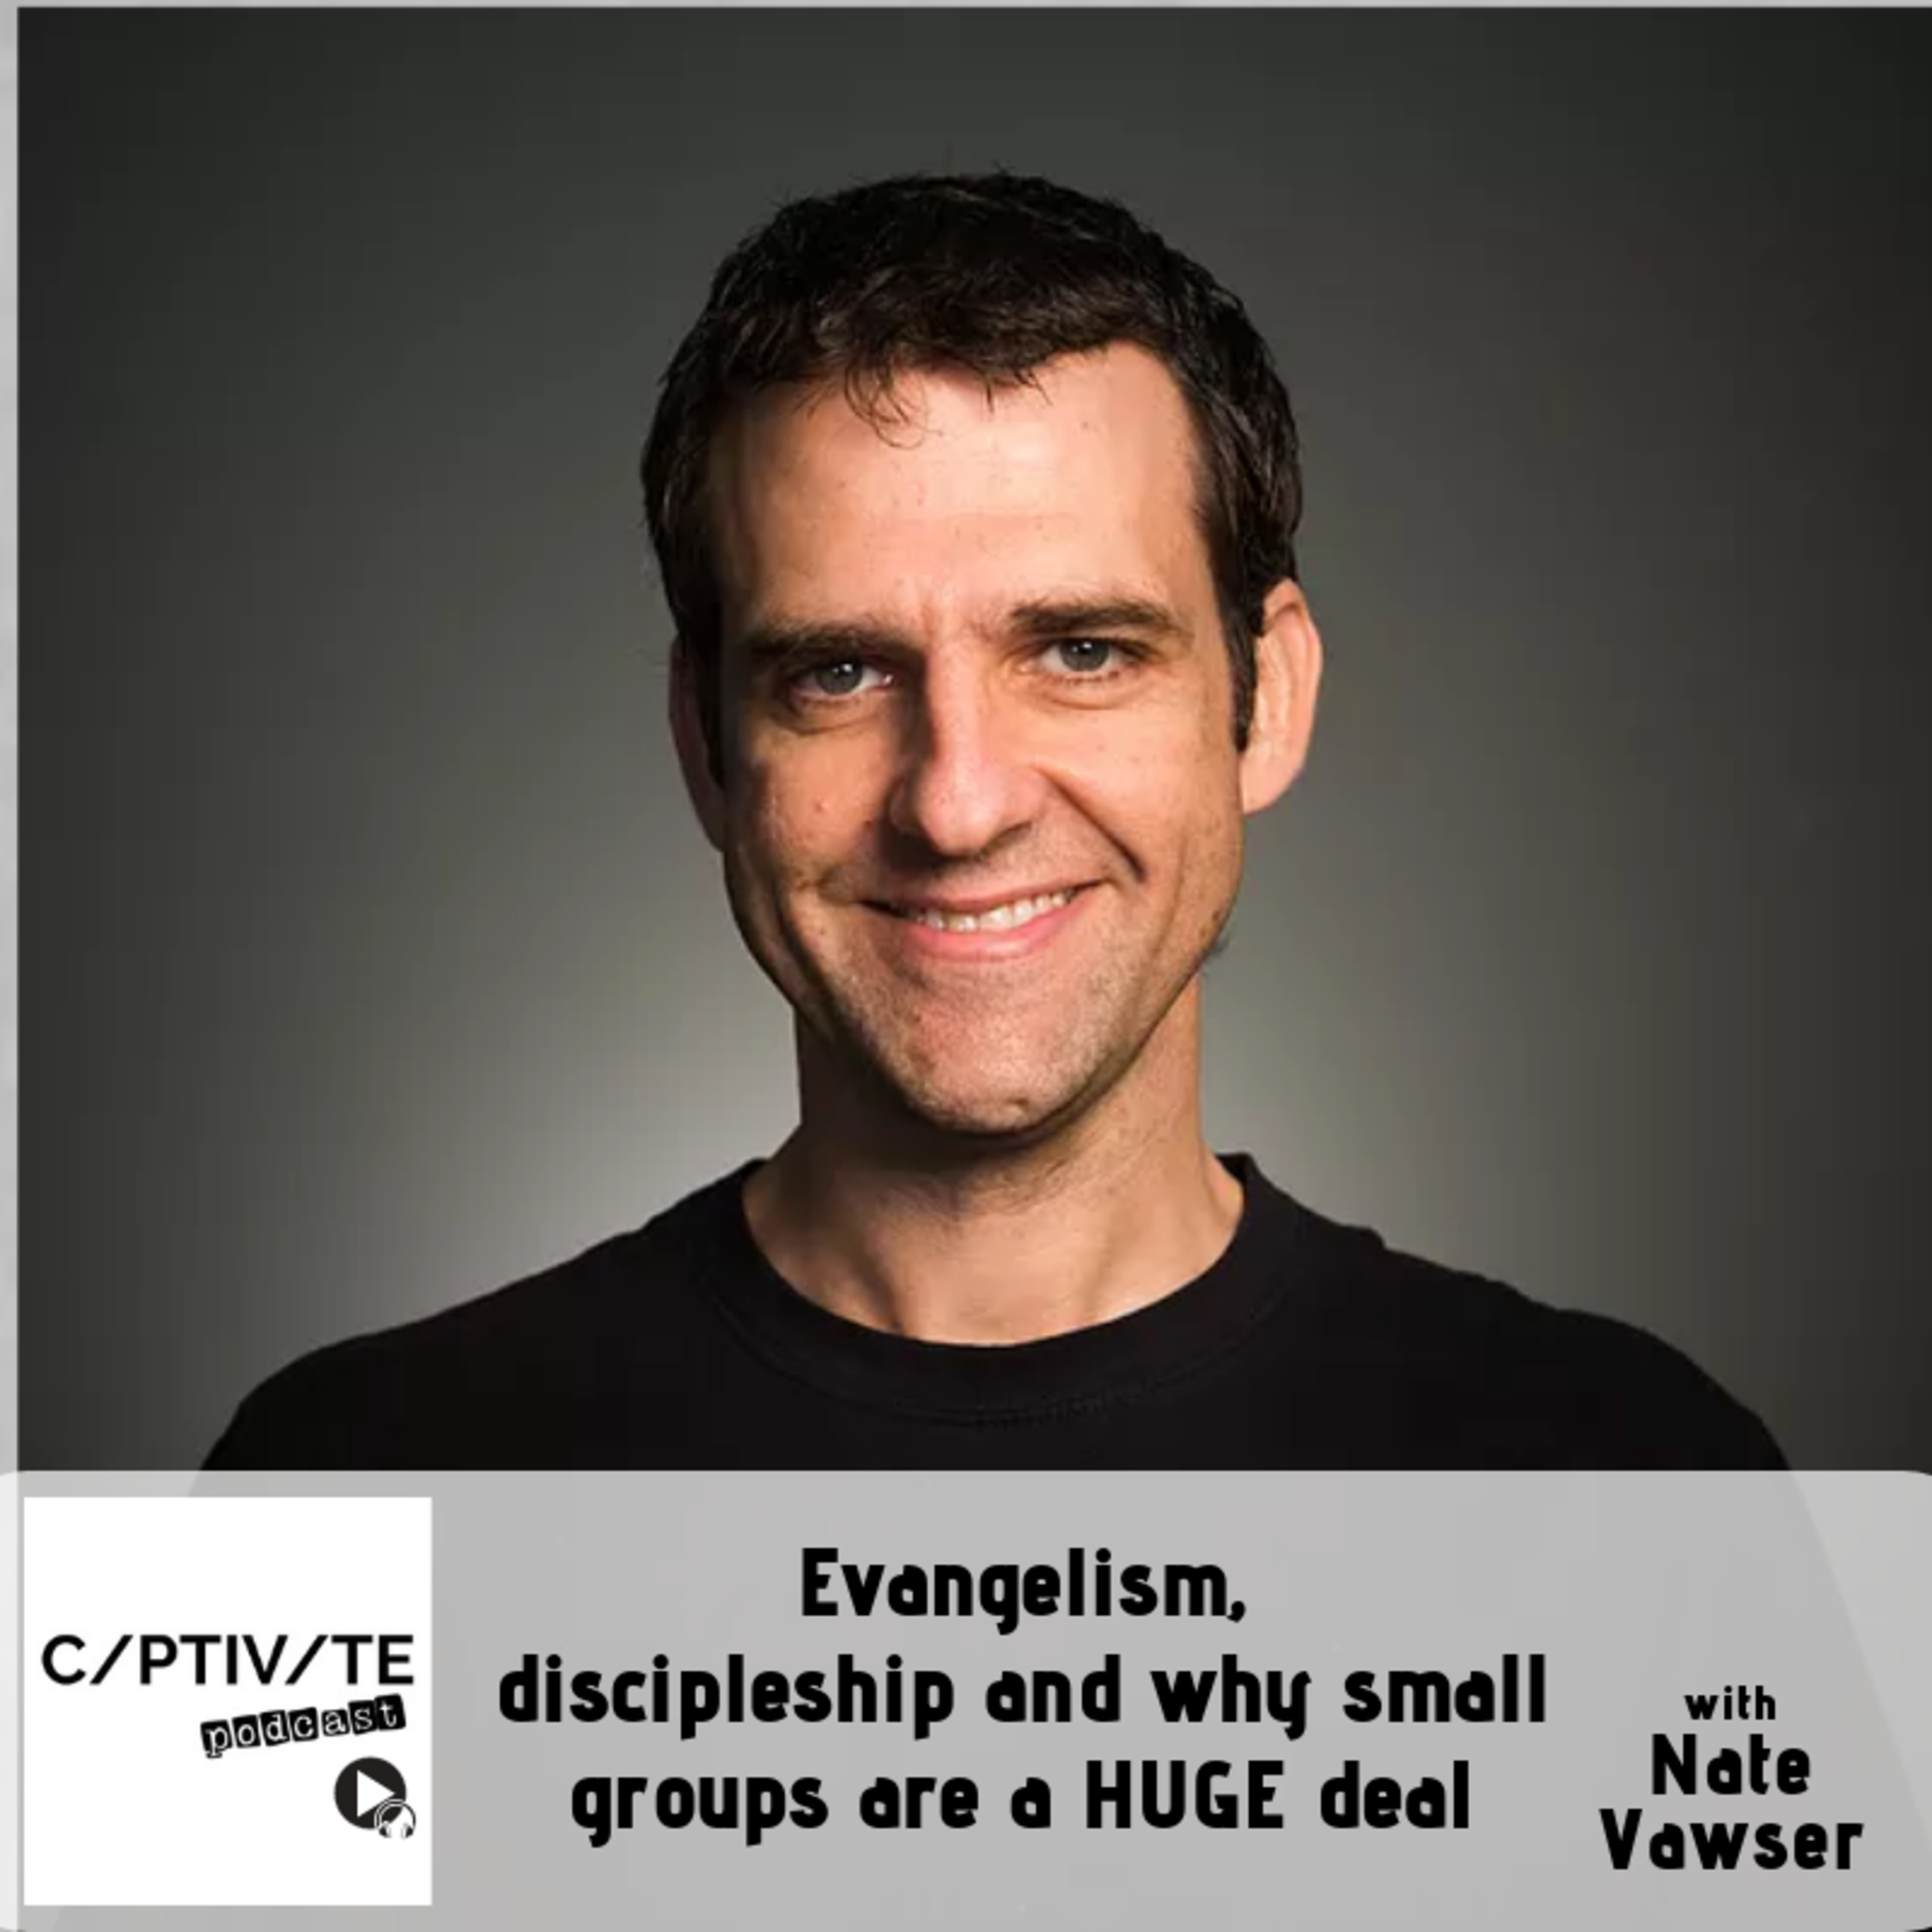 CP 09: Nate Vawser - Evangelism, discipleship and why small groups are a HUGE deal